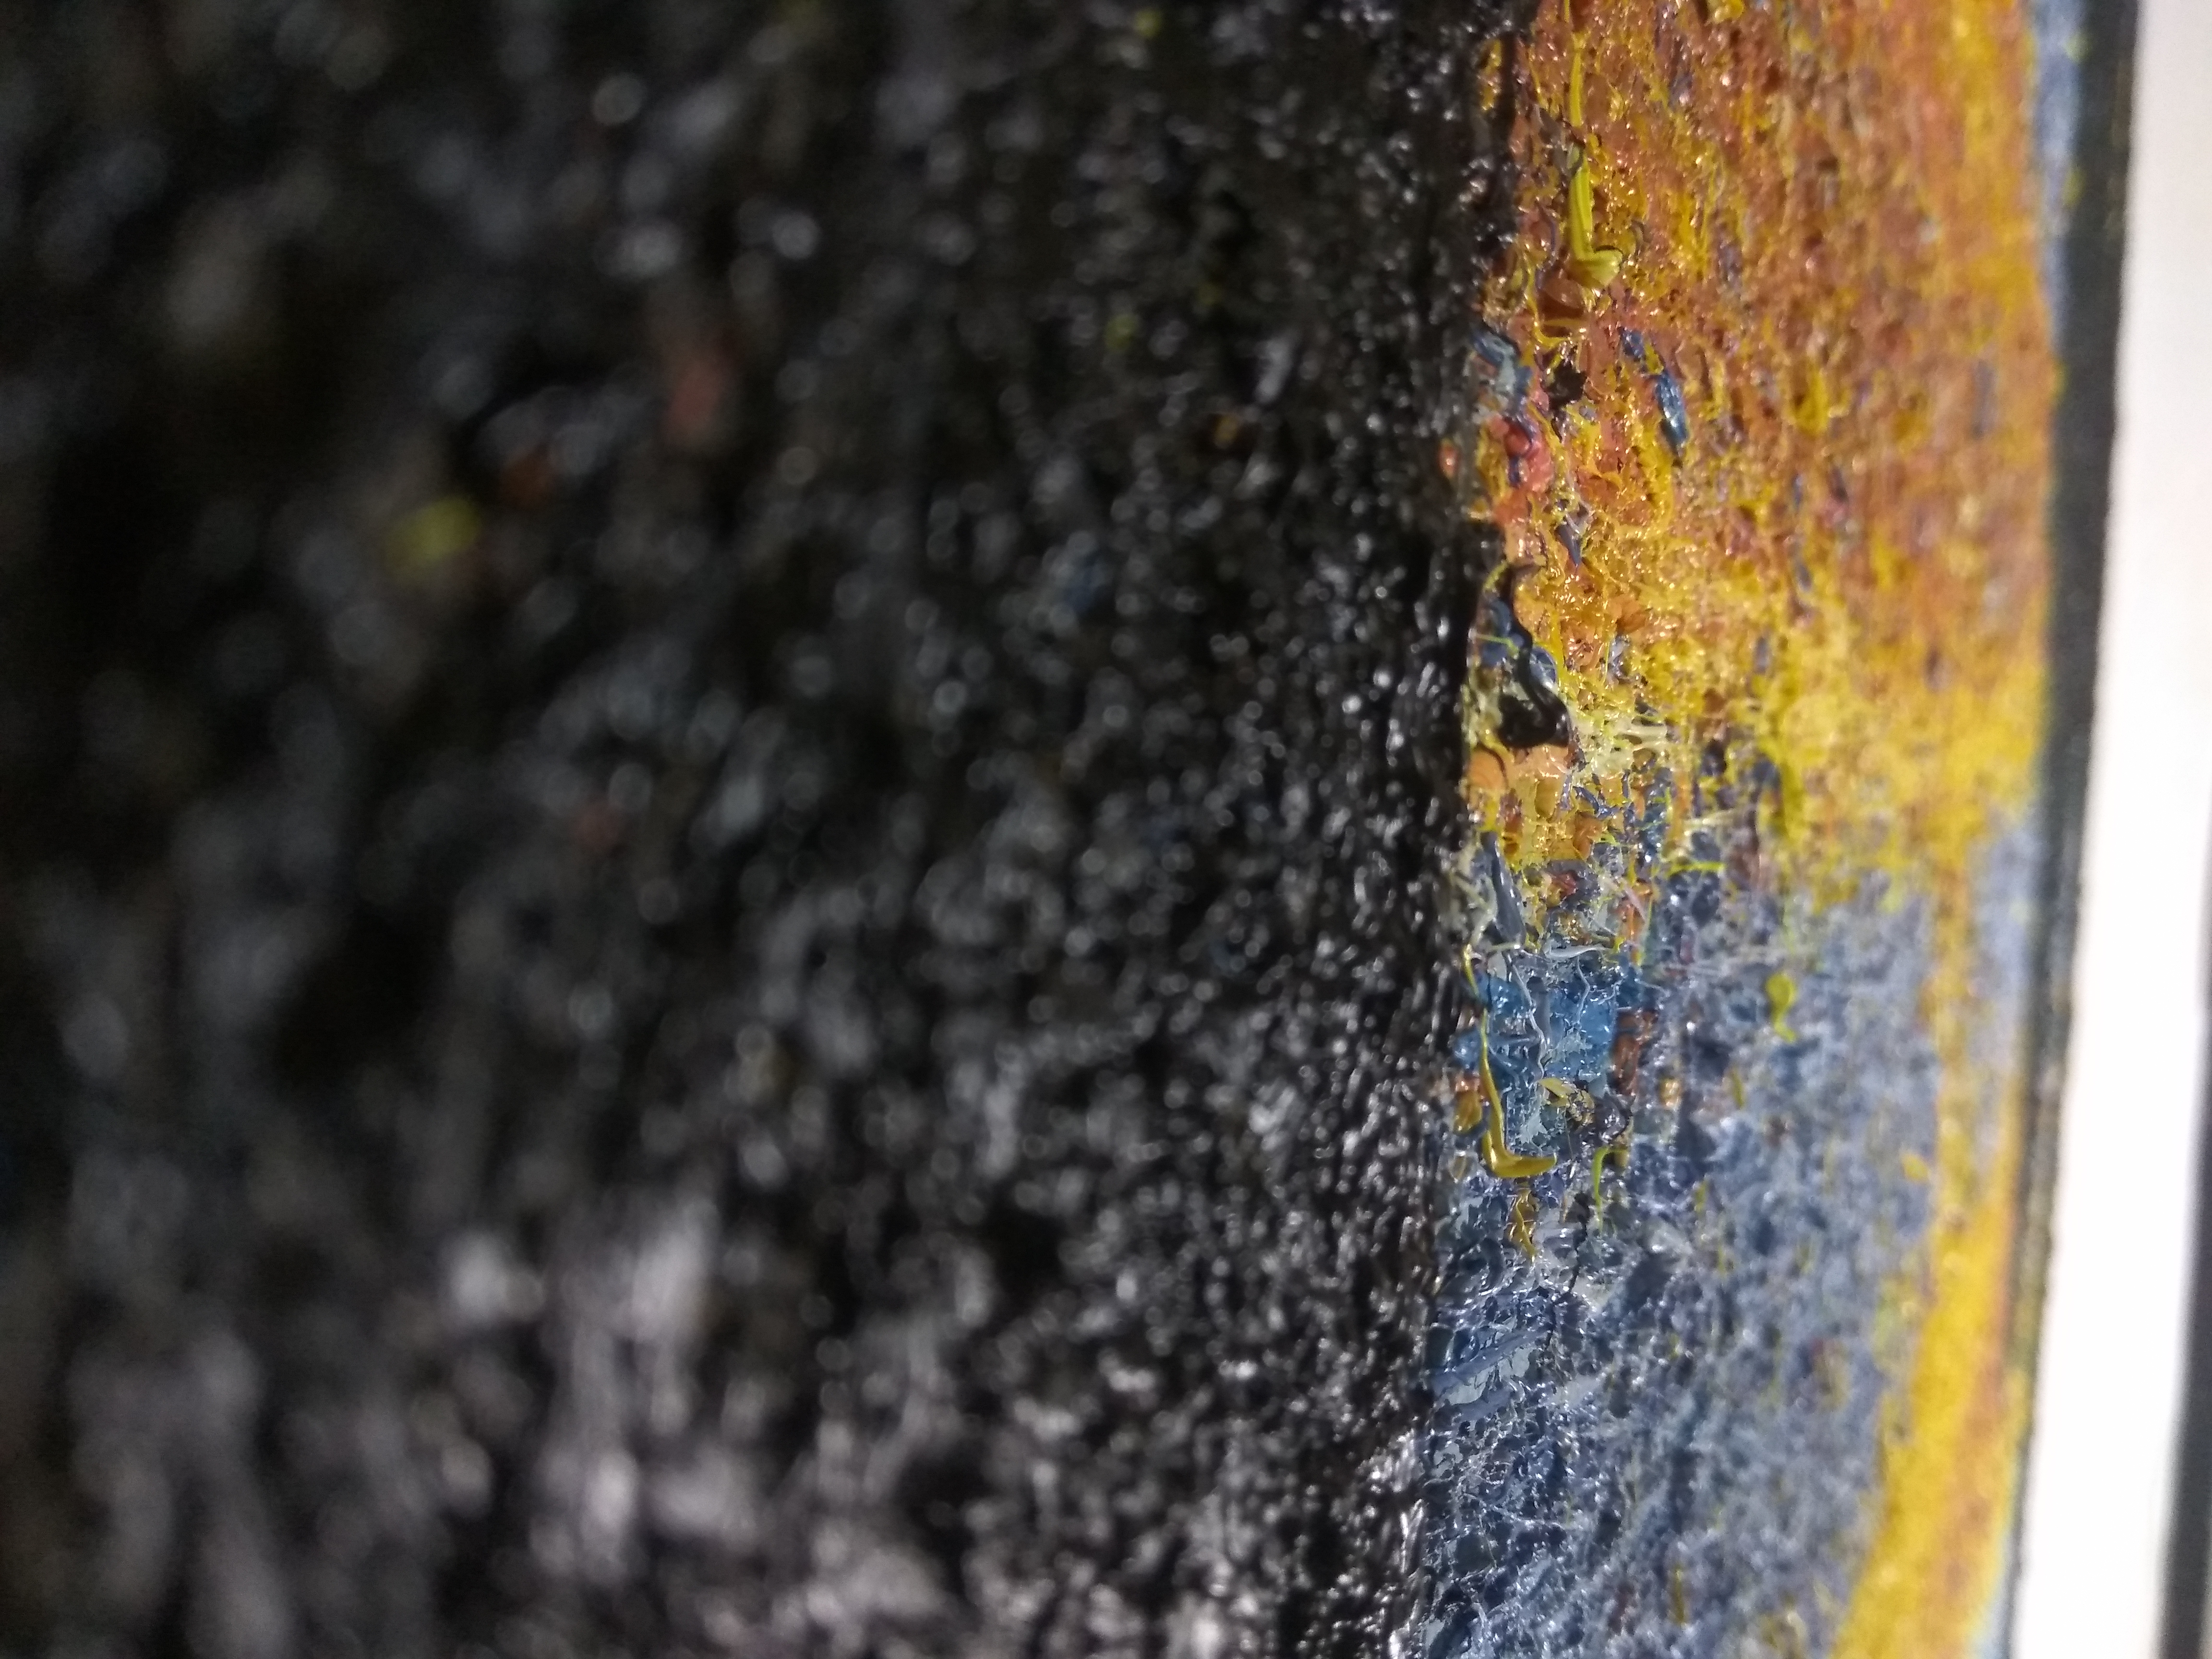 #mrlnsk oil painting closeup Texture and Colors